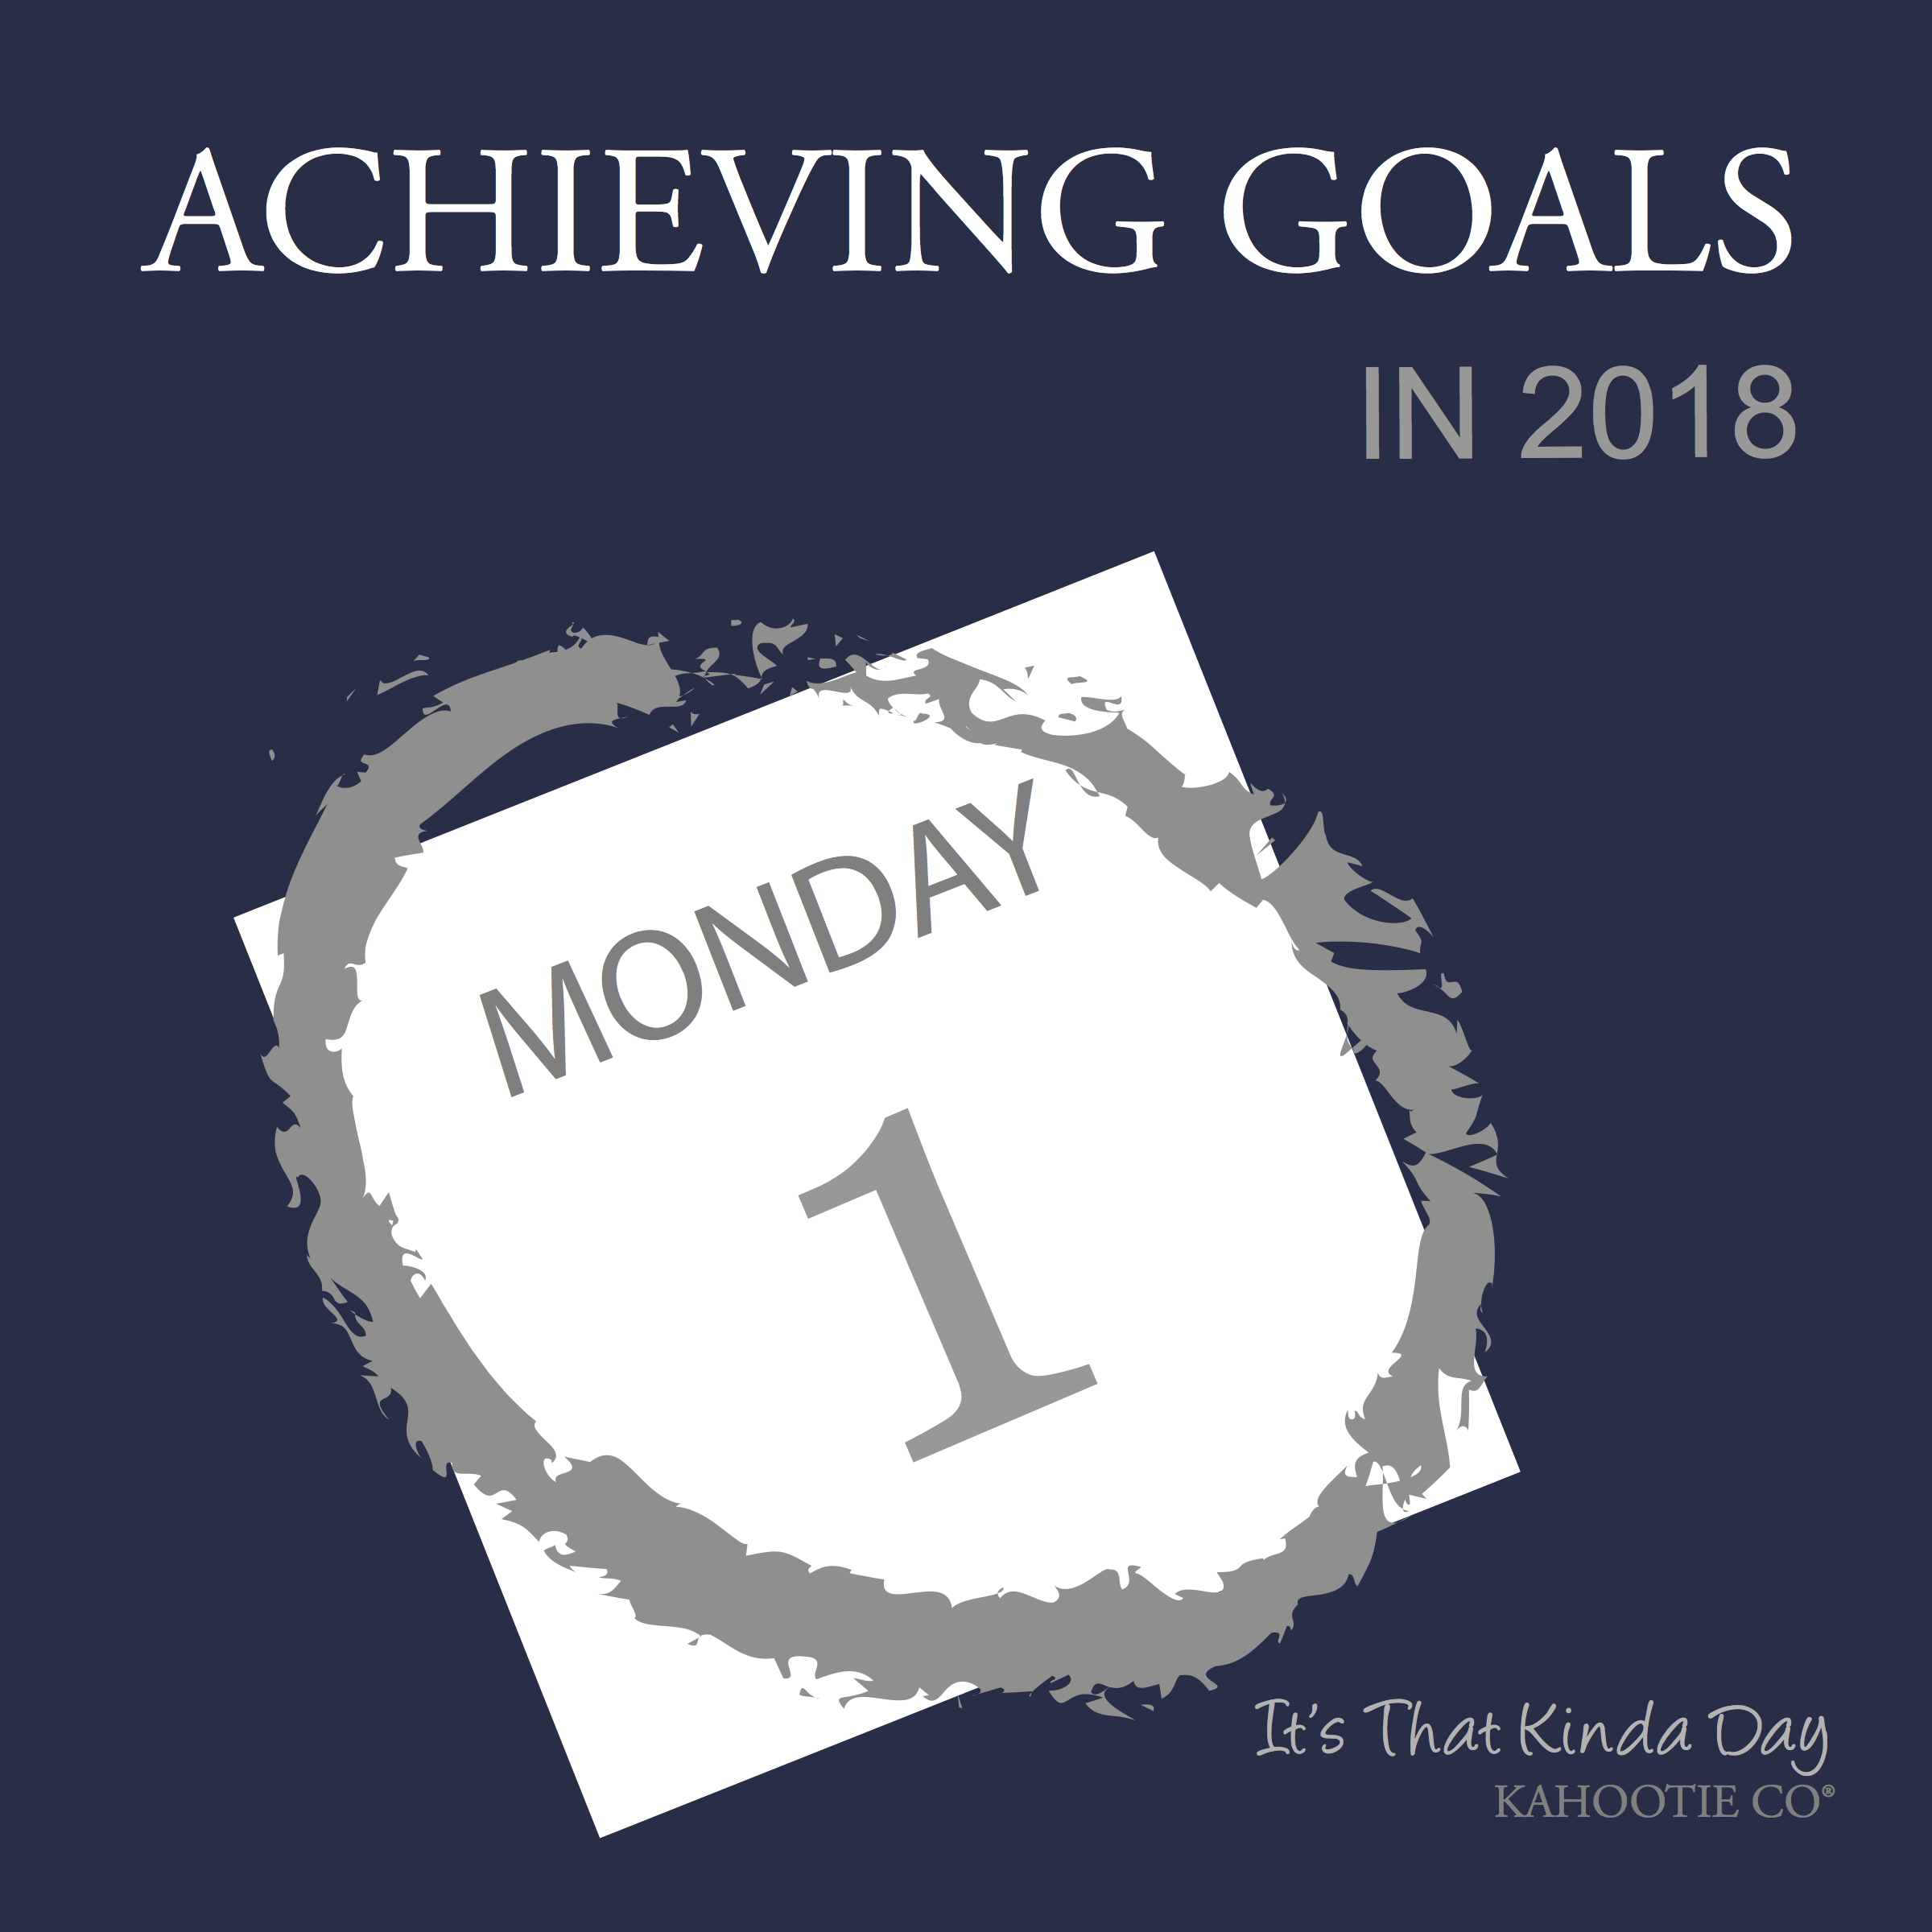 ACHIEVING GOALS.png